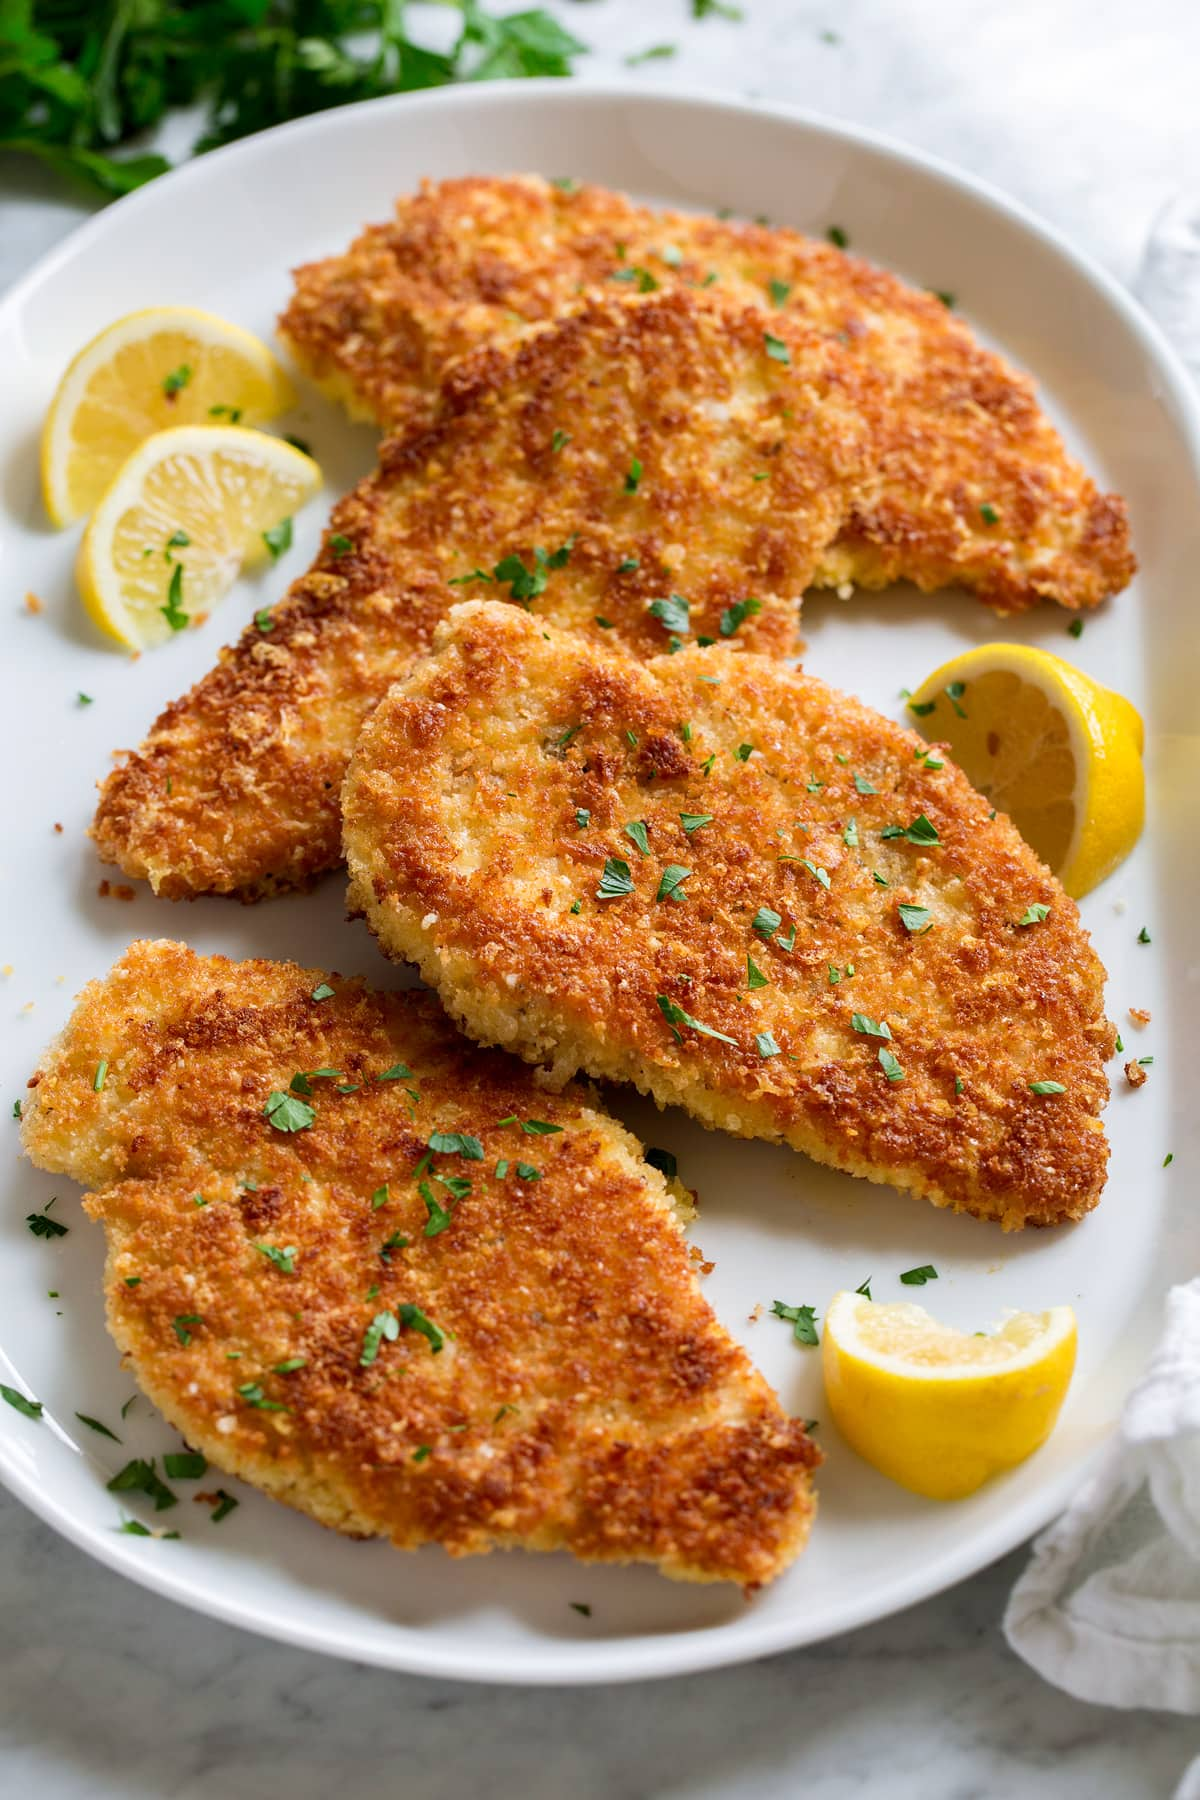 Parmesan Crusted Chicken cutlets shown on a white serving platter from a side angle. Lemons are shown to the side and parsley is garnished over.